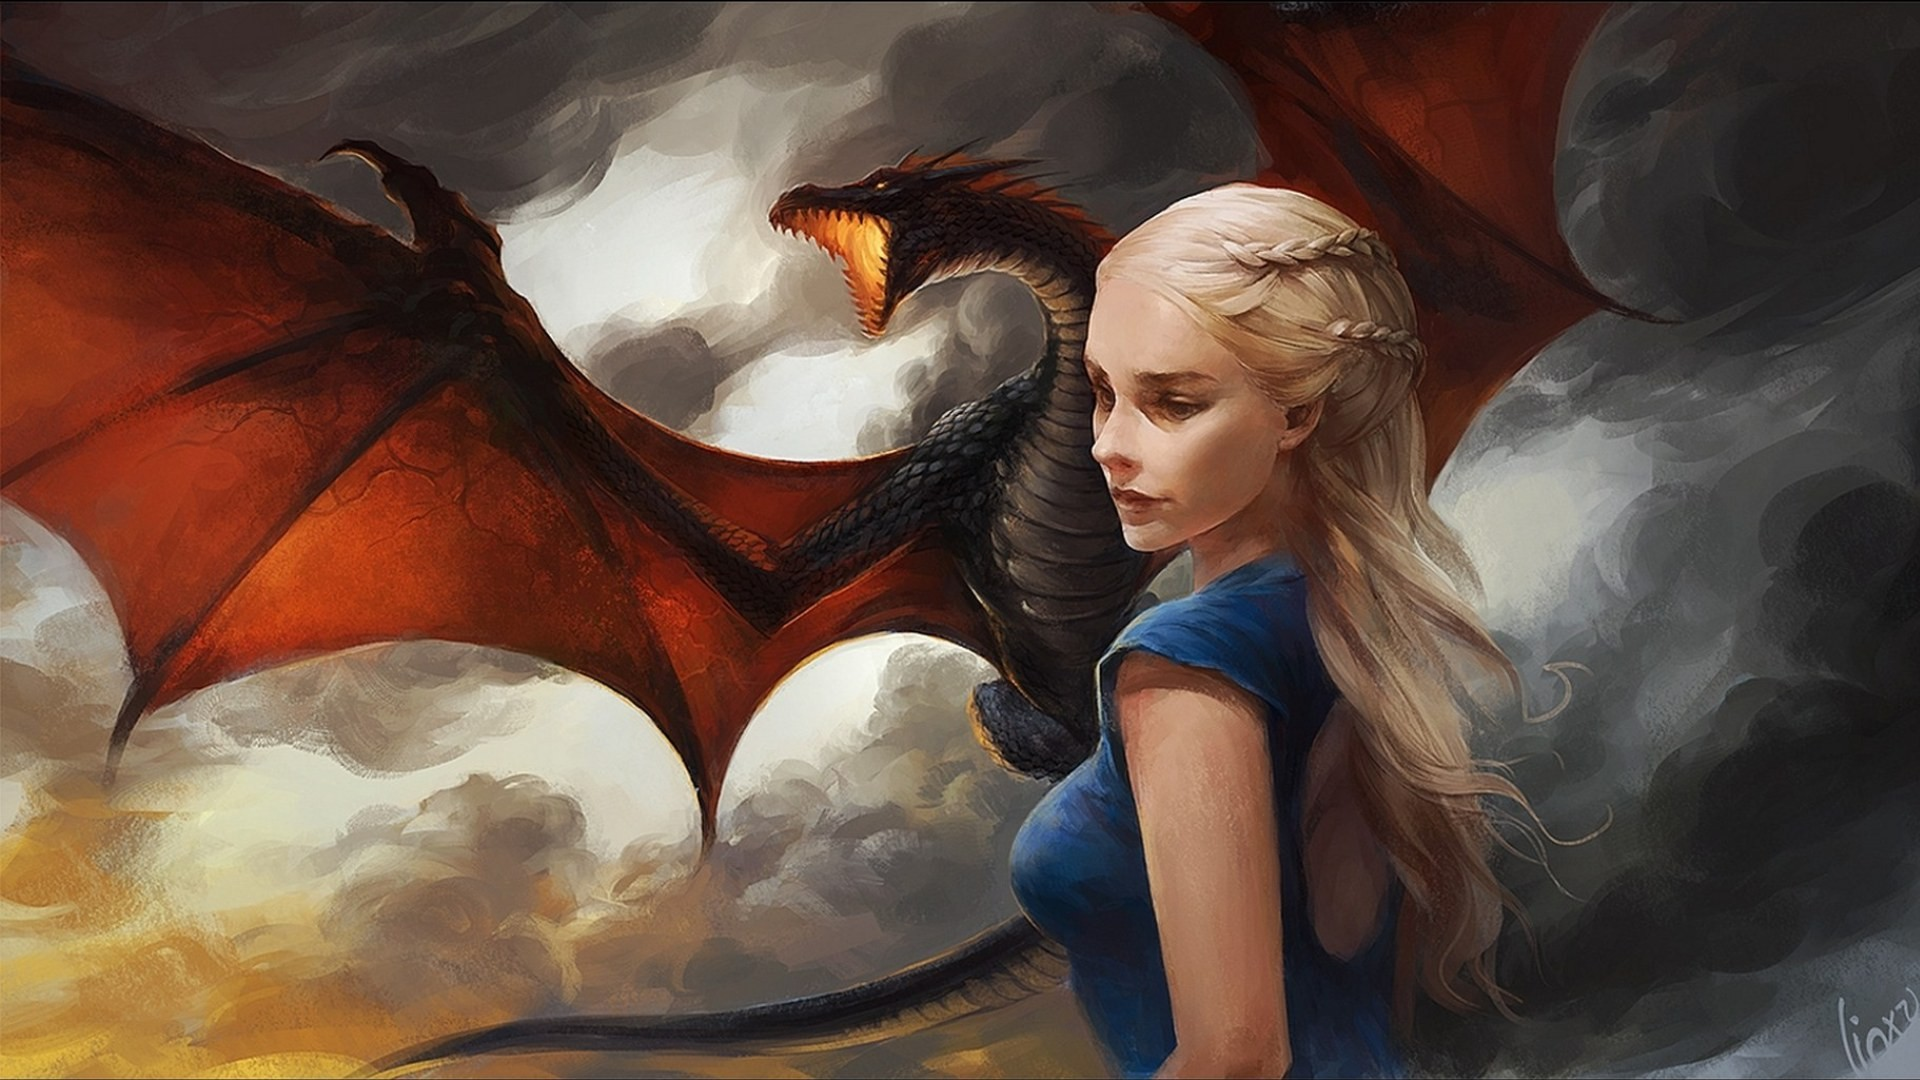 dragon game of thrones daenerys targaryen artwork paintings x